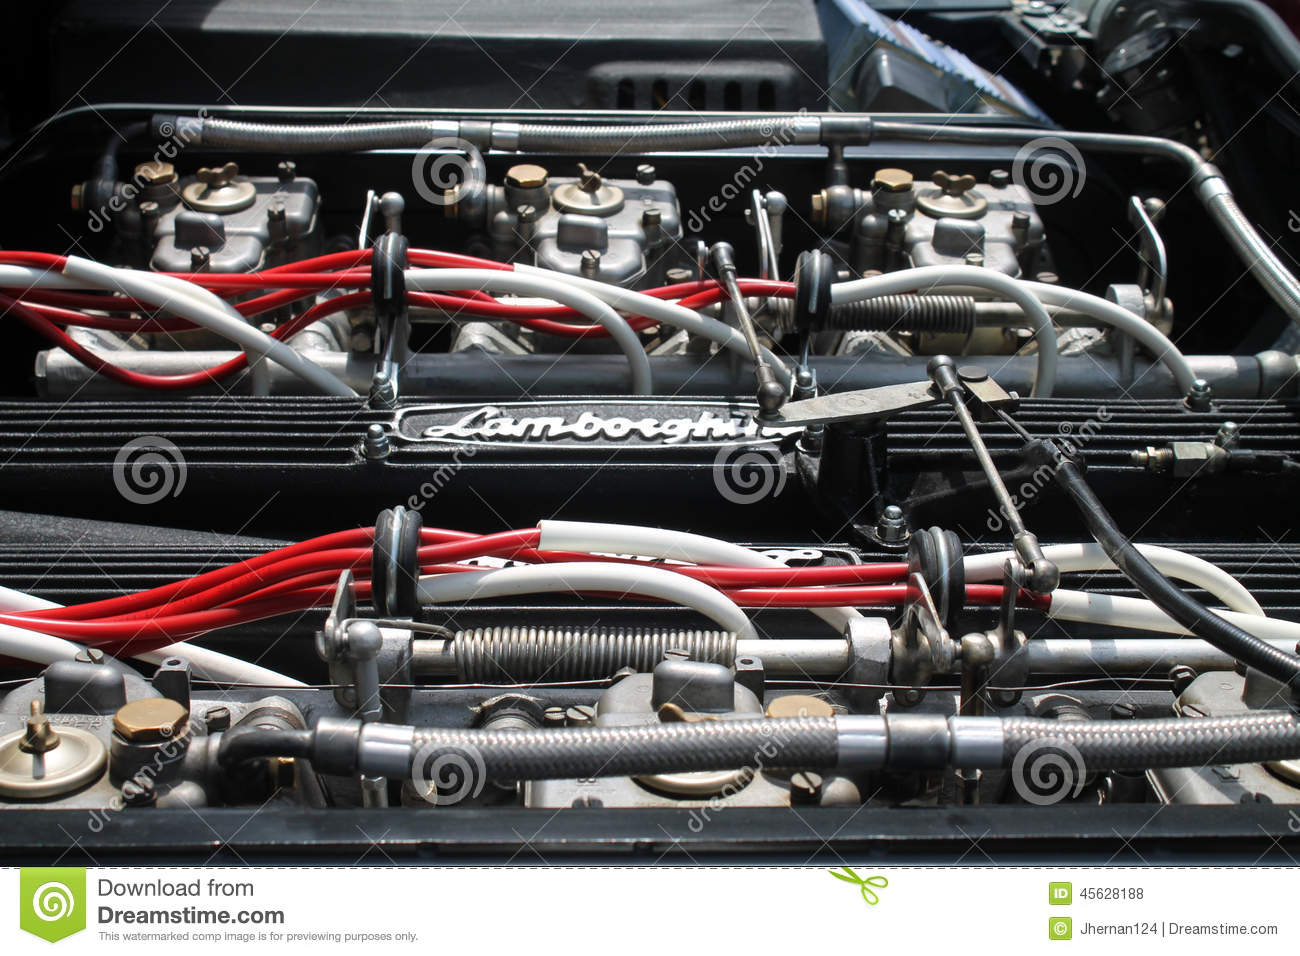 Vintage Sports Car Engine Bay View Editorial Stock Photo  Image